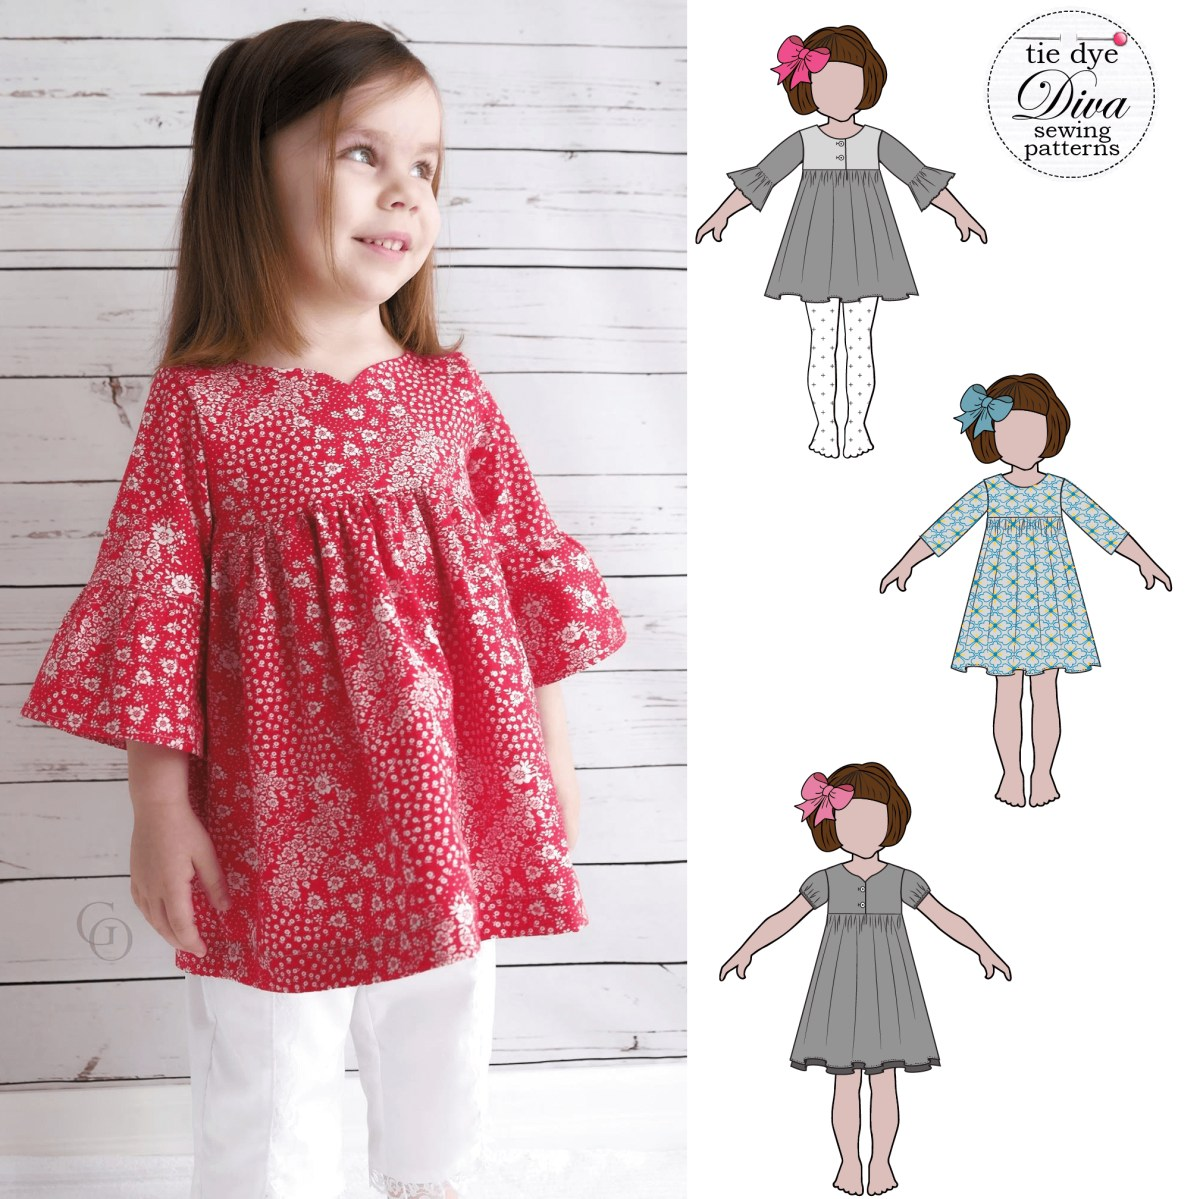 Girls Sewing Patterns Clementine Dress And Top For Girls 12 Months To 910 Years Tie